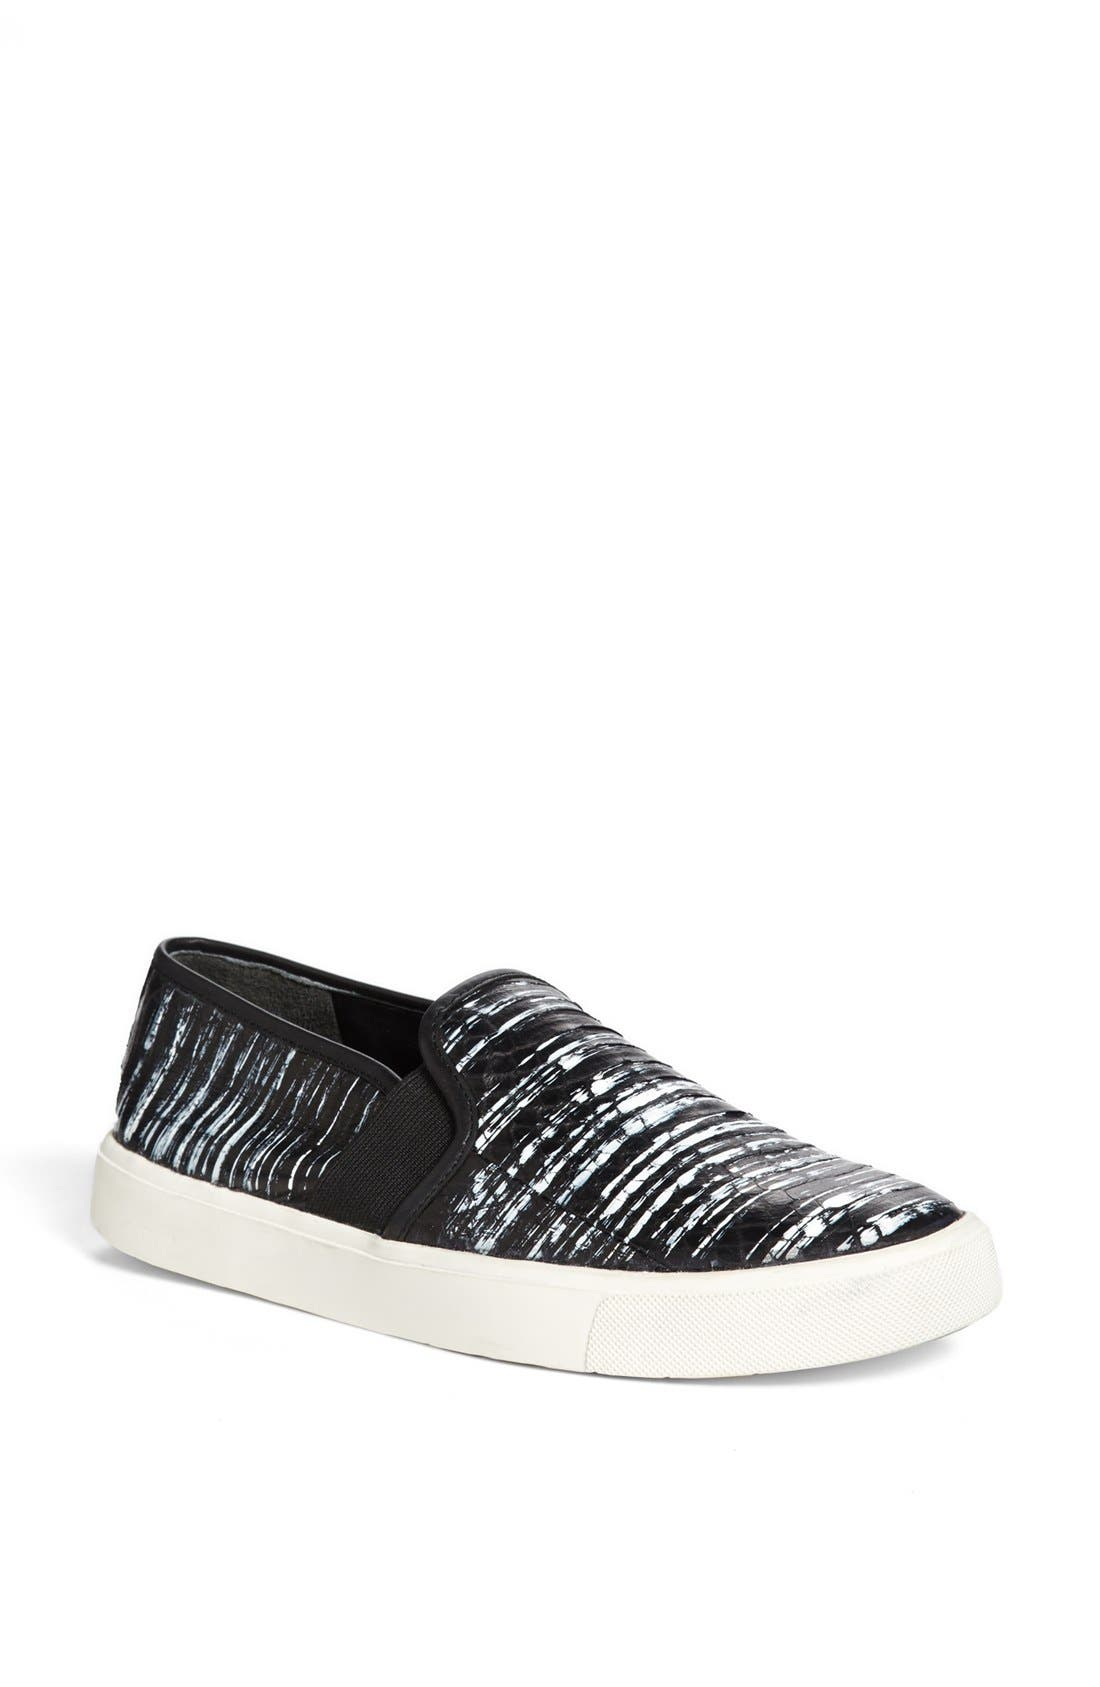 Main Image - Vince 'Blair 7' Snakeskin Slip-On Sneaker